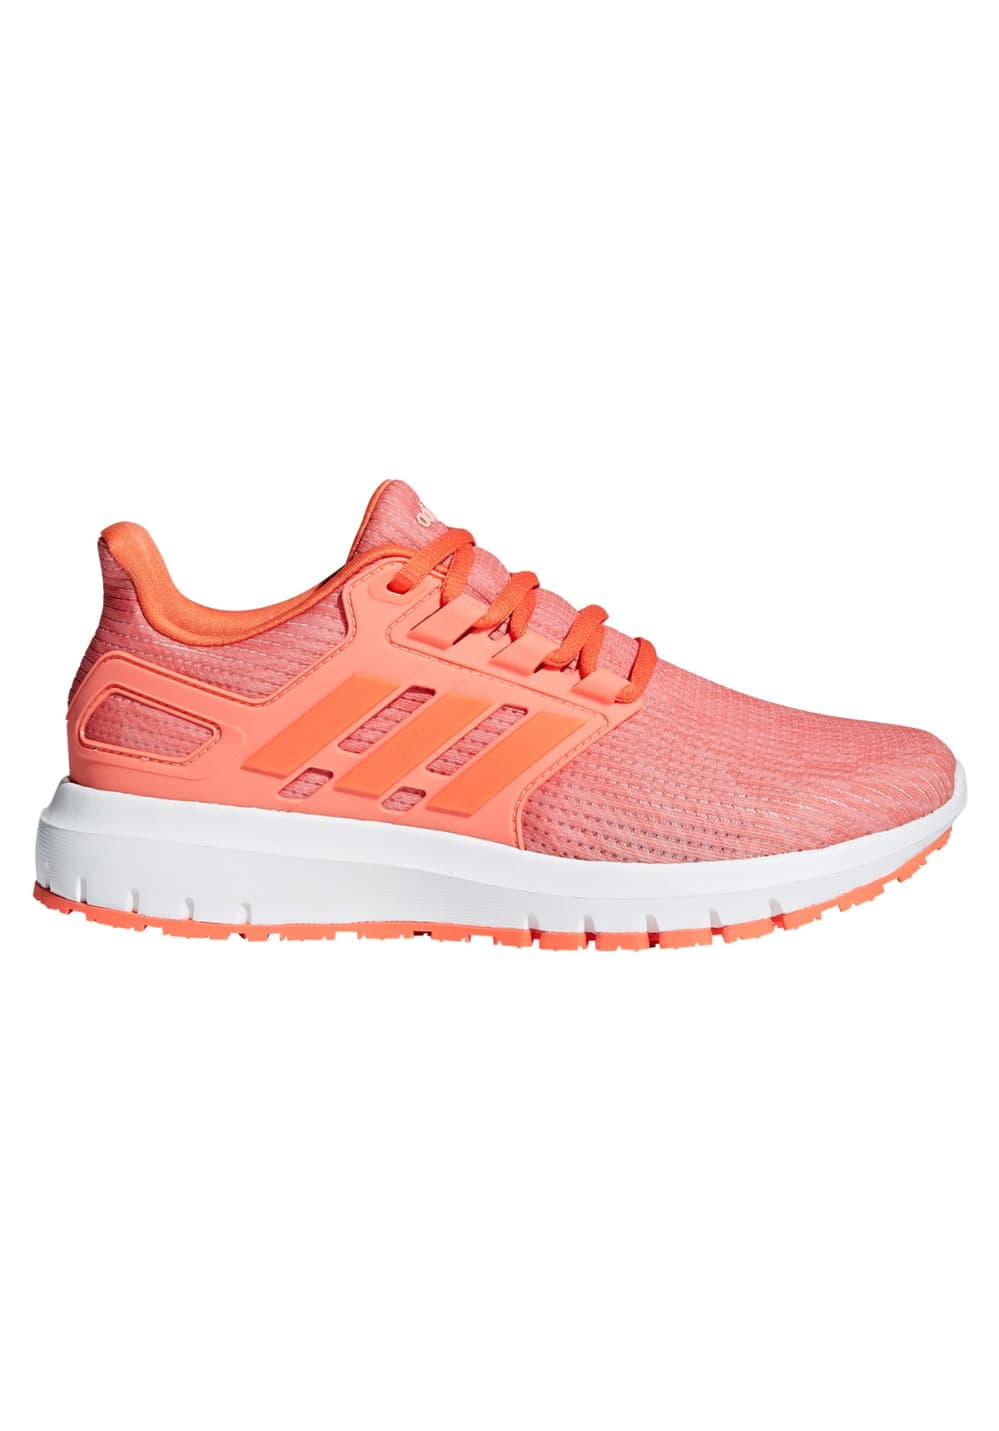 8bf8933d5947b9 Next. -40%. This product is currently out of stock. adidas. Energy Cloud 2 W  - Running shoes for Women